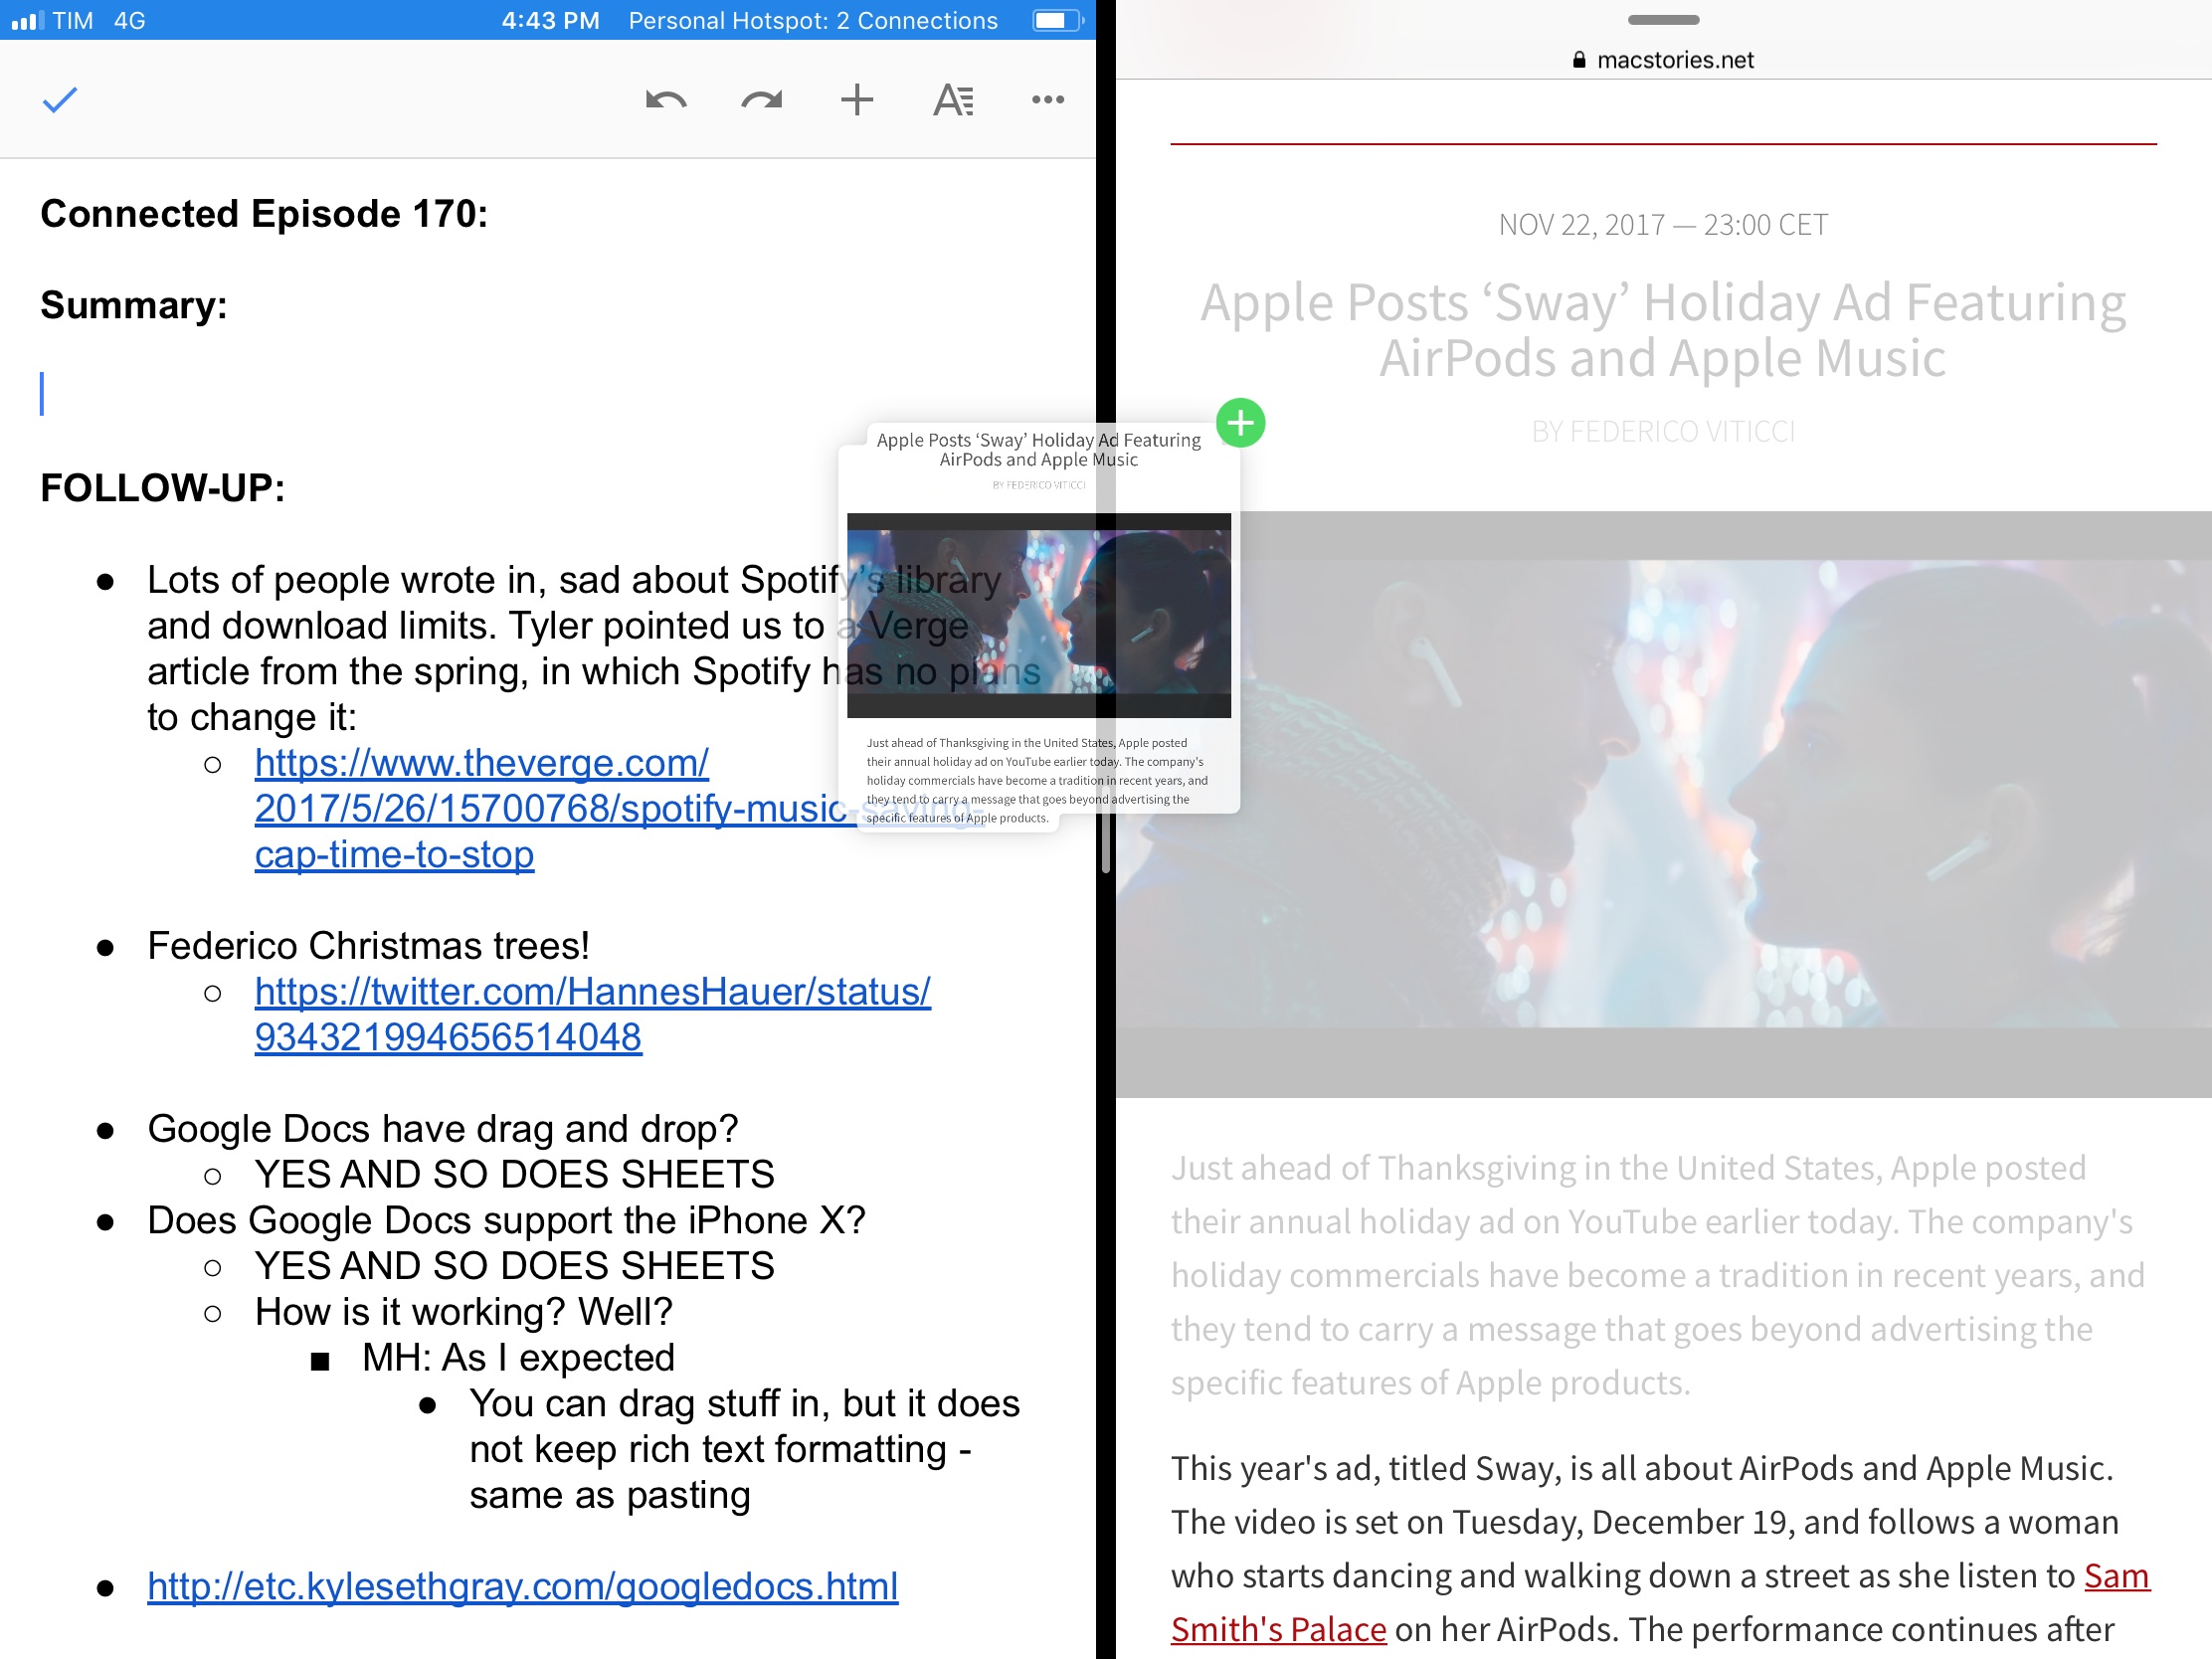 Drag and drop in Google Docs for iPad.